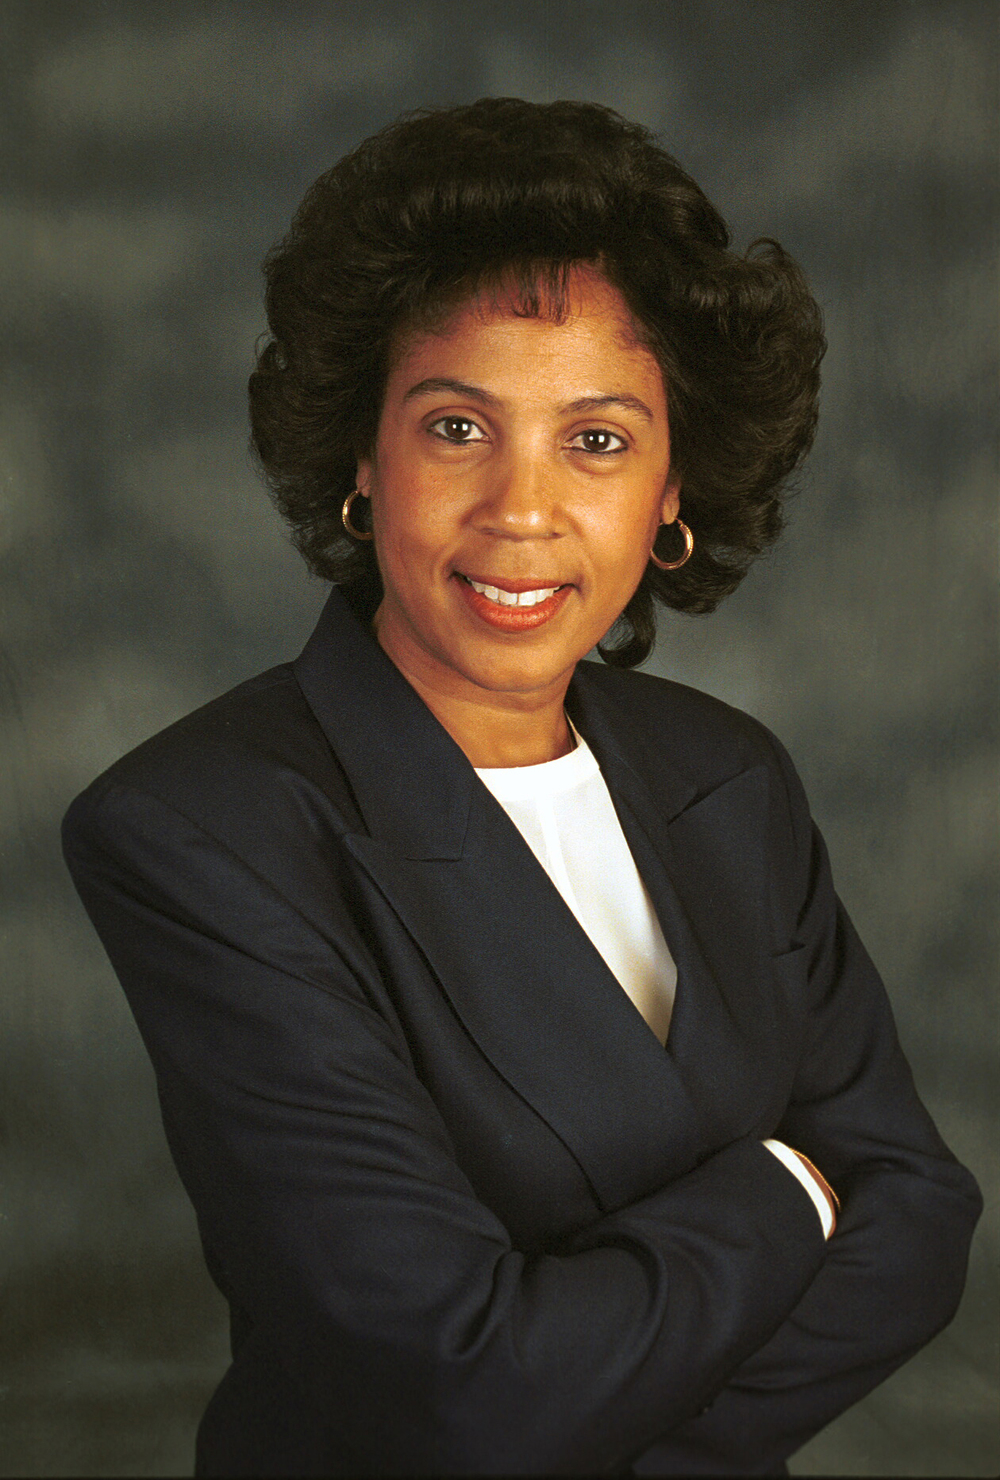 AT&T Vice President of Human Resources Miriam Graddick Ware.jpg